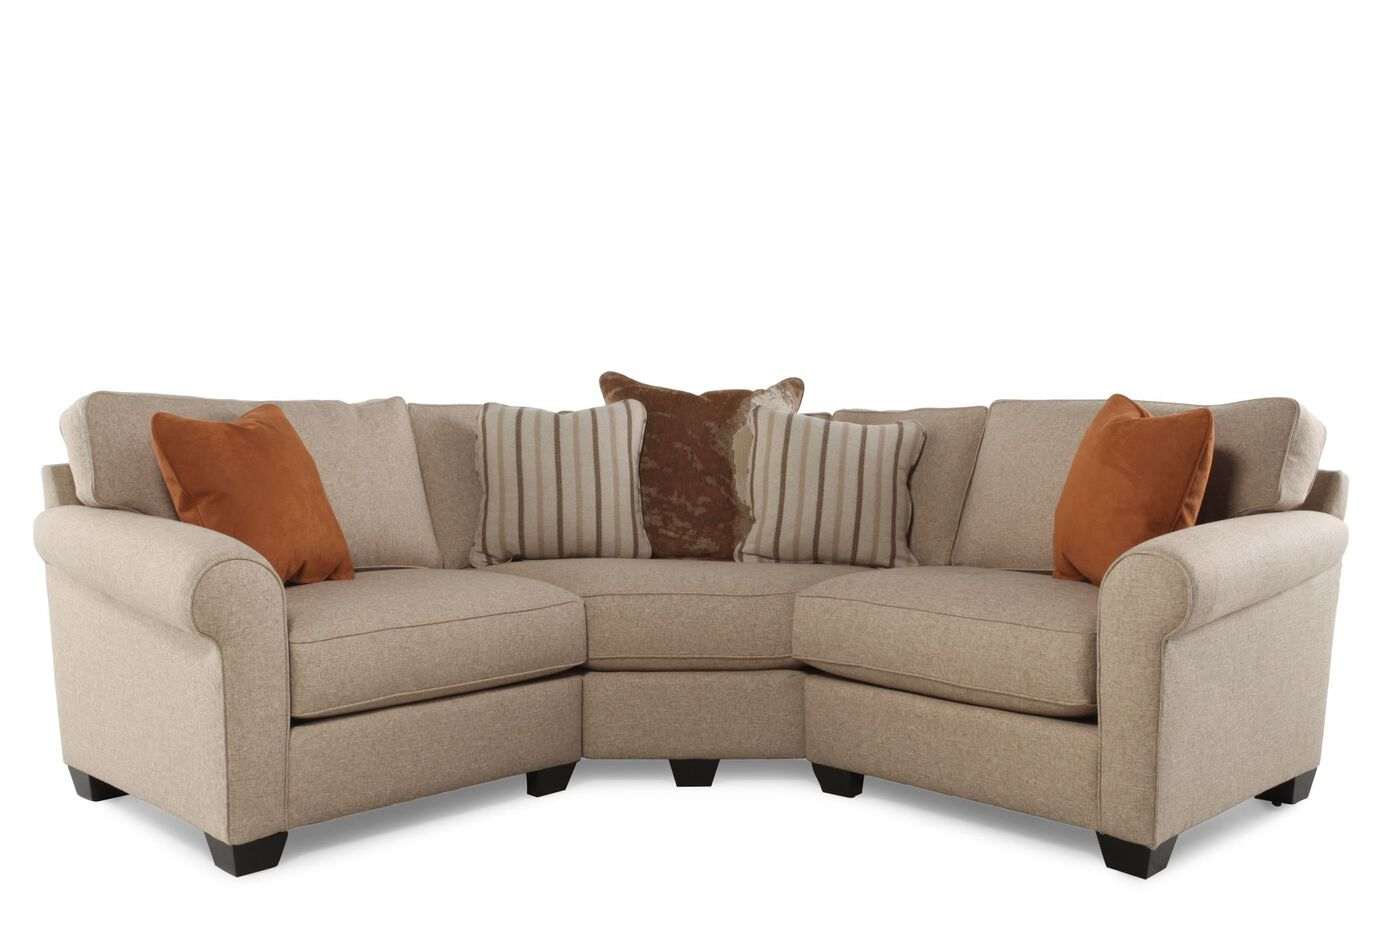 Three piece contemporary sectional in sand mathis for Sectional sofa mathis brothers